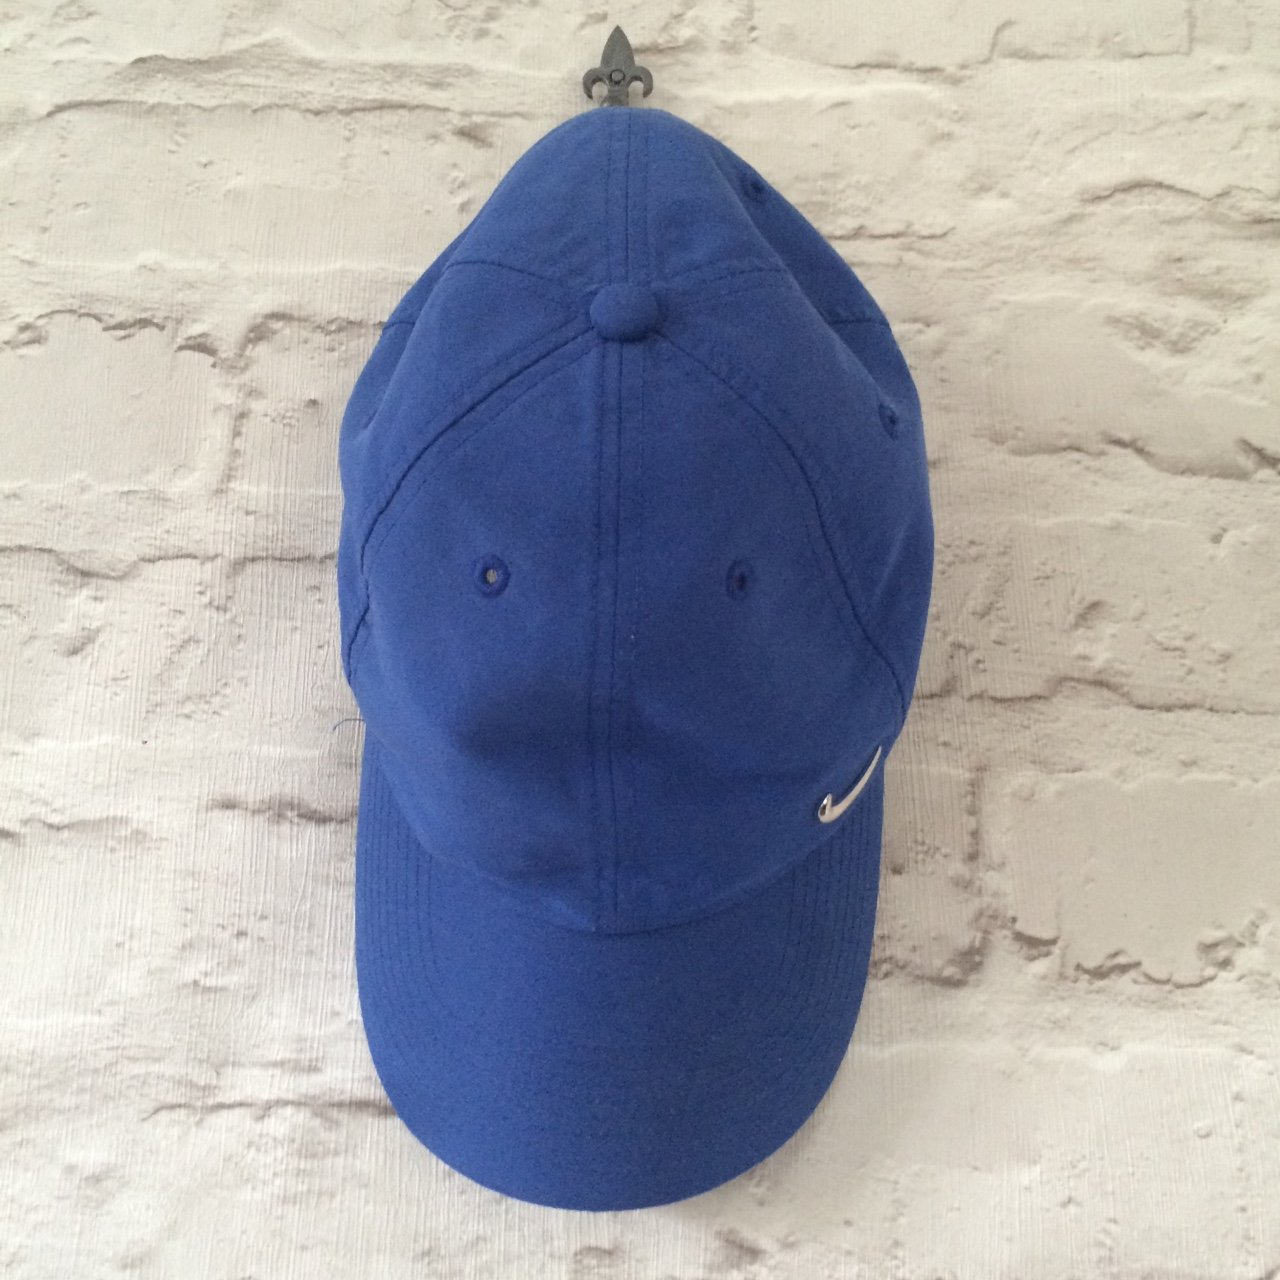 f8637ef569f Blue Nike hat cap. Good condition no visible signs of wear. - Depop